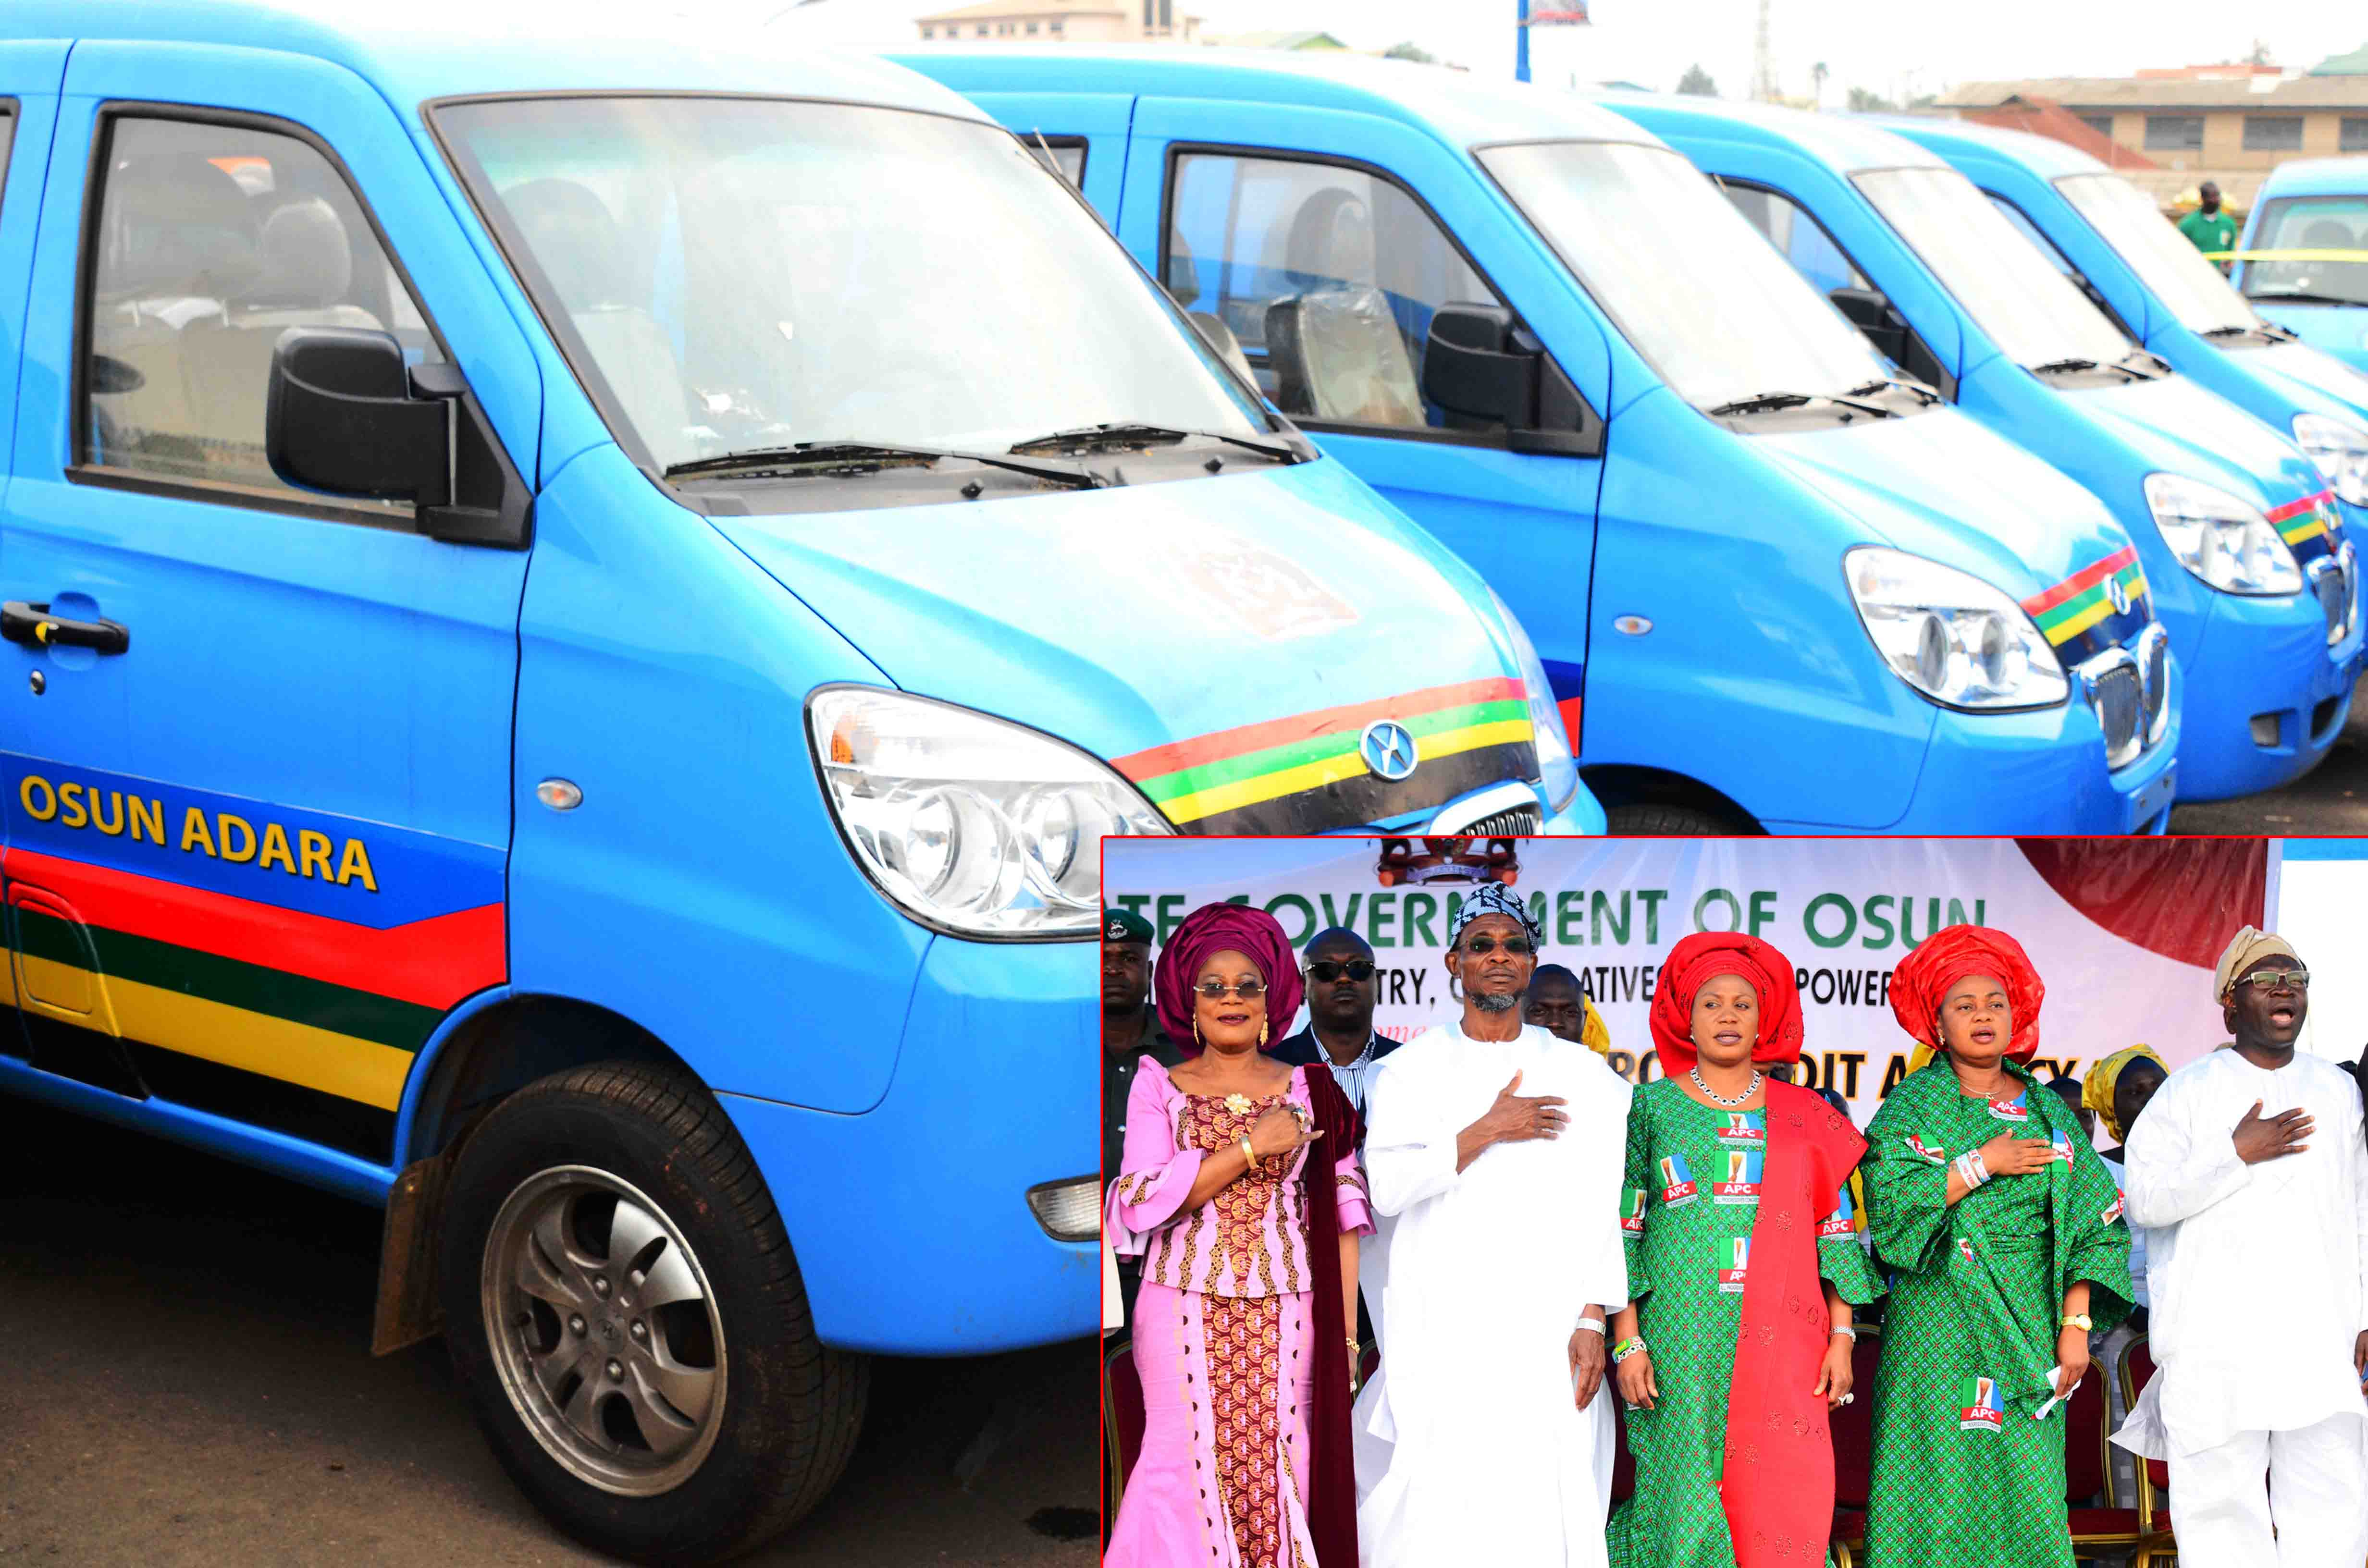 Some of the Mini-Buses distributed to Members of Road Transport Employers Association of Nigeria  (RTEAN) and Cooperative Transporters of Nigeria, at Nelson Mandela Freedom Park, Osogbo, State of Osun. Insert: From left, Deputy Governor, Mrs Titi Laoye-Tomori; Governor Rauf Aregbesola; his Wife, Sherifat; Member, House of Representatives representing Irewole/Ayedaade/Isokan Federal Constituency, Honourable Ayo Omidiran and Commissioner for Commerce, Industries, Cooperatives and Empowerment, Mr Ismaila Alagbada on Wednesday 09-07-2014